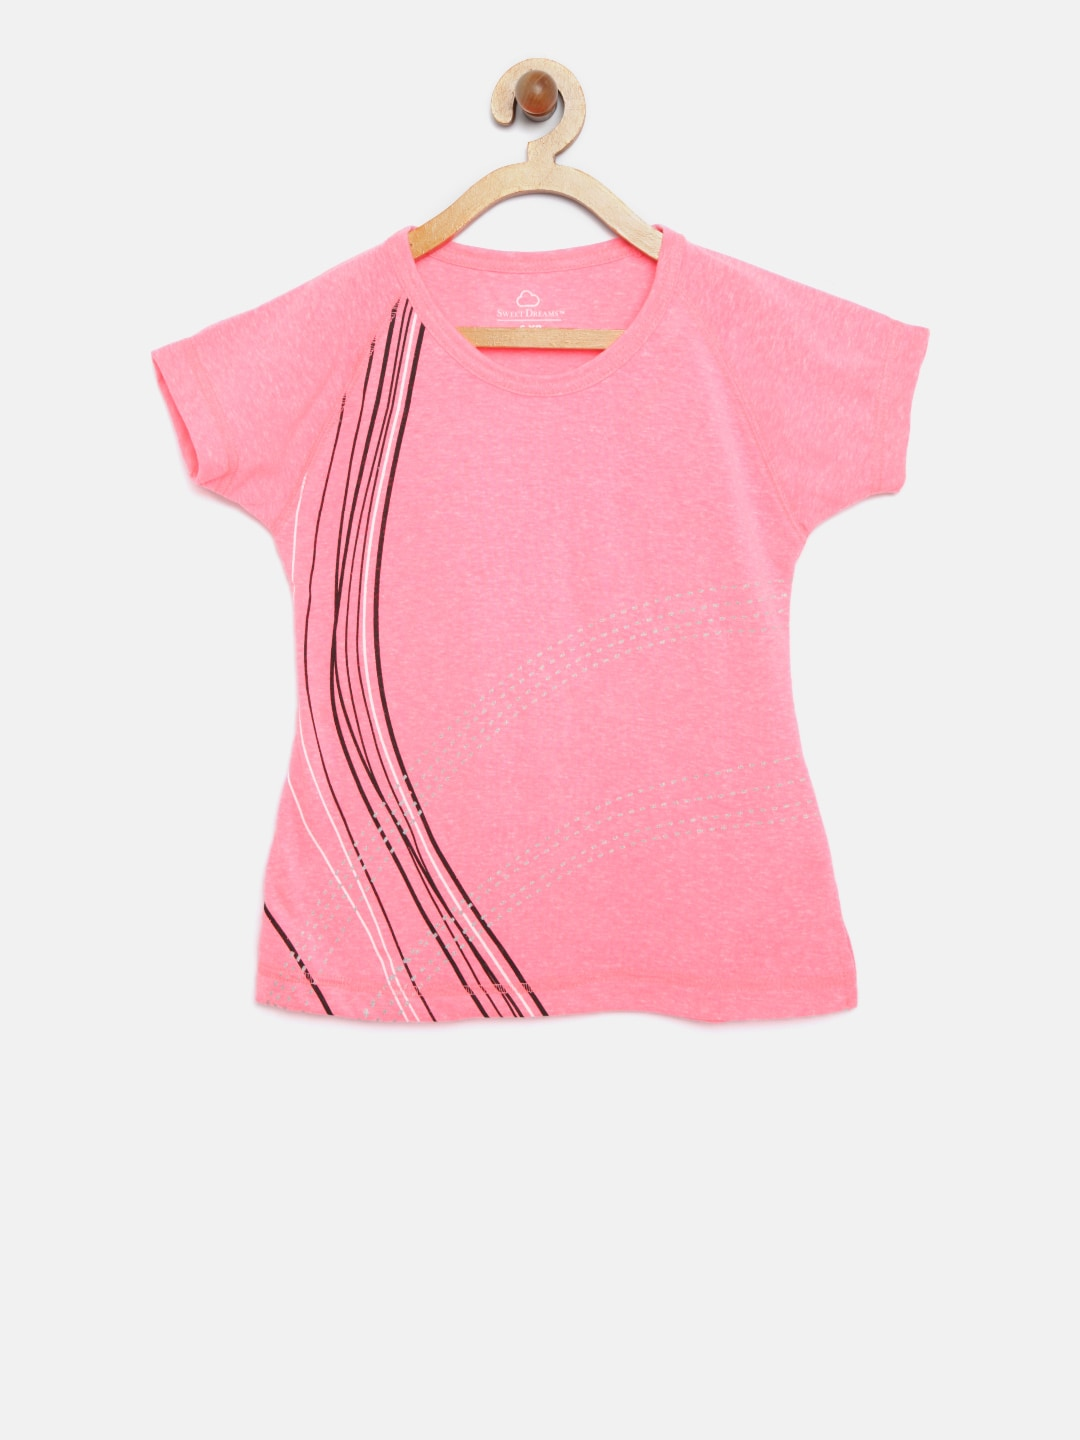 Neon Tshirts Buy Online In India Back To All Images Shop Gt Women39s Short